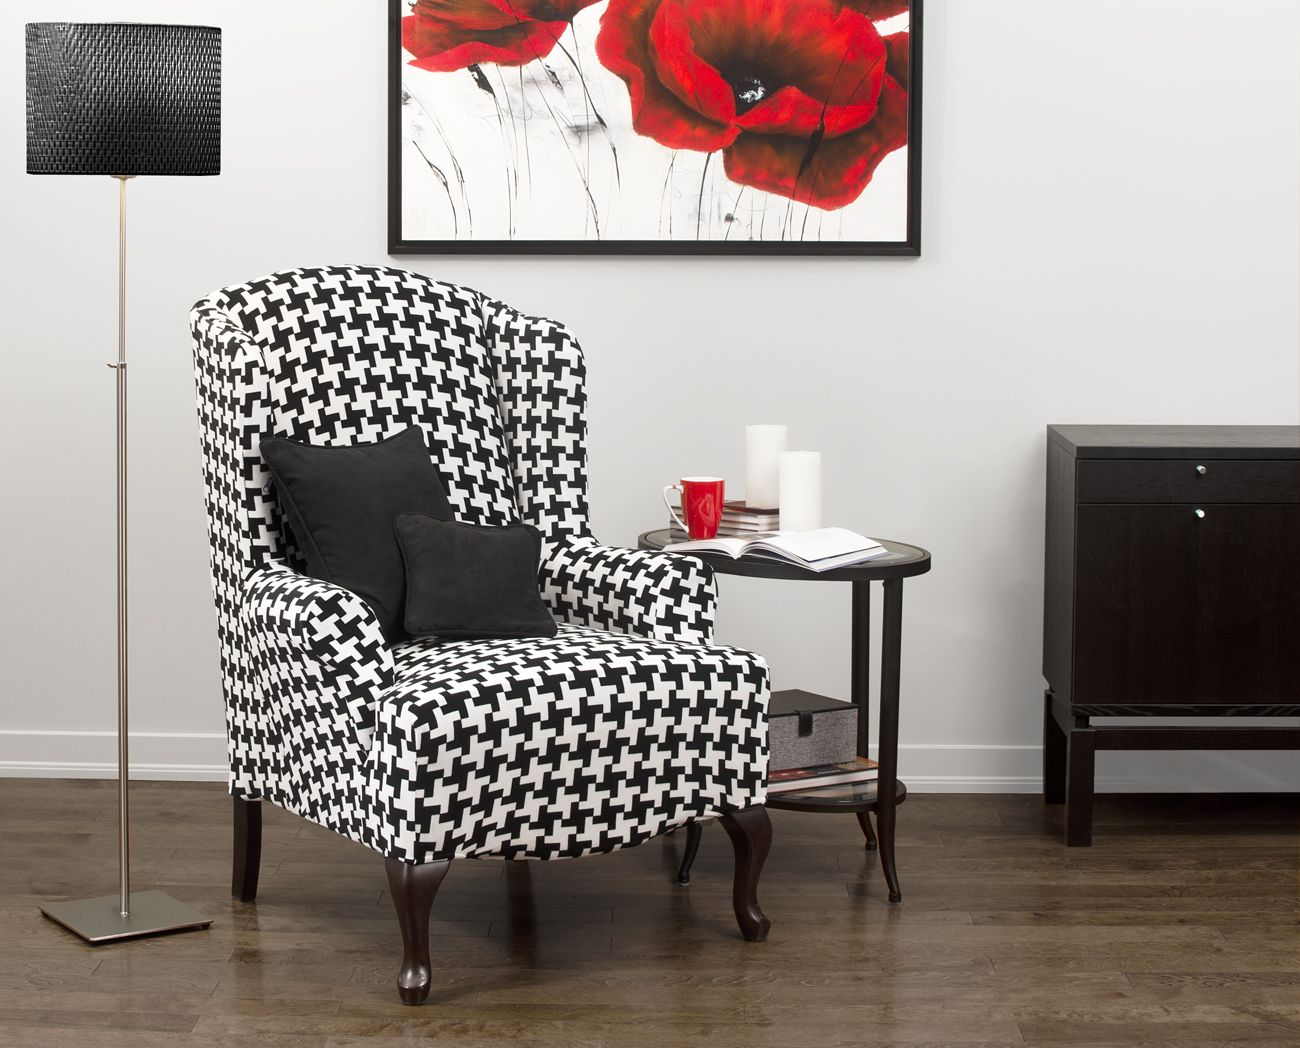 Hudson Black Wing Chair Slipcover Slipcovers for chairs